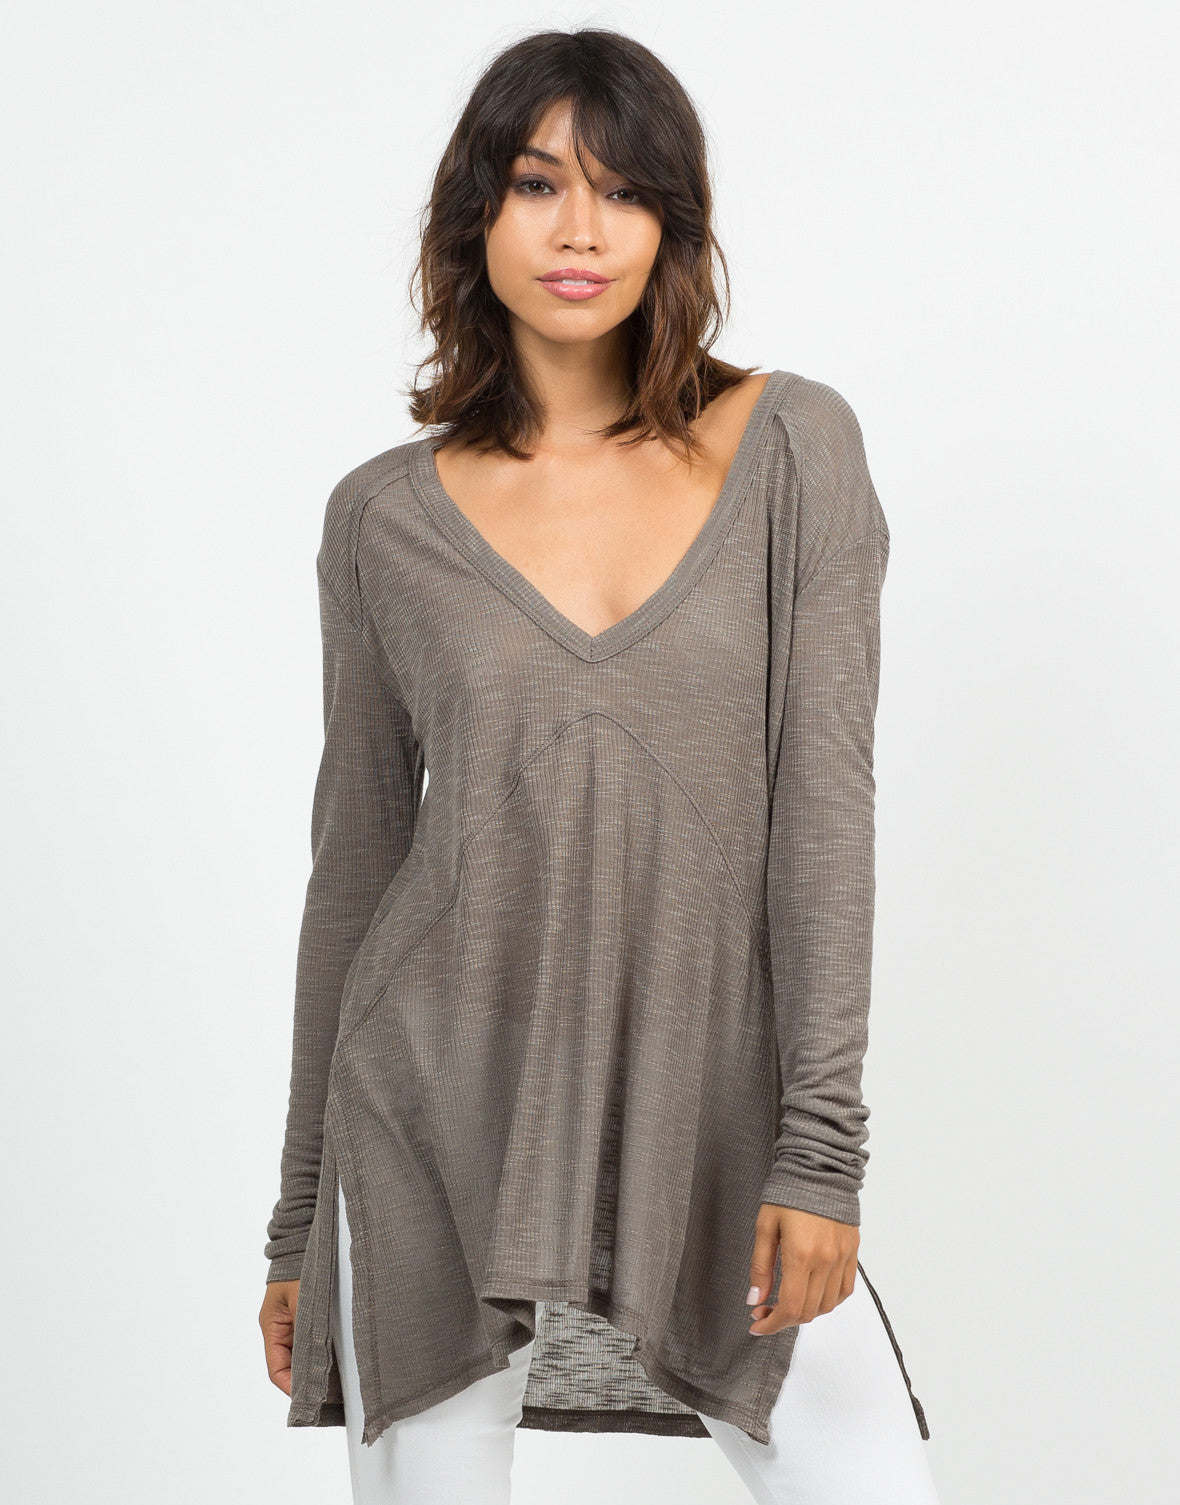 Front View of Lightweight Sweater Top